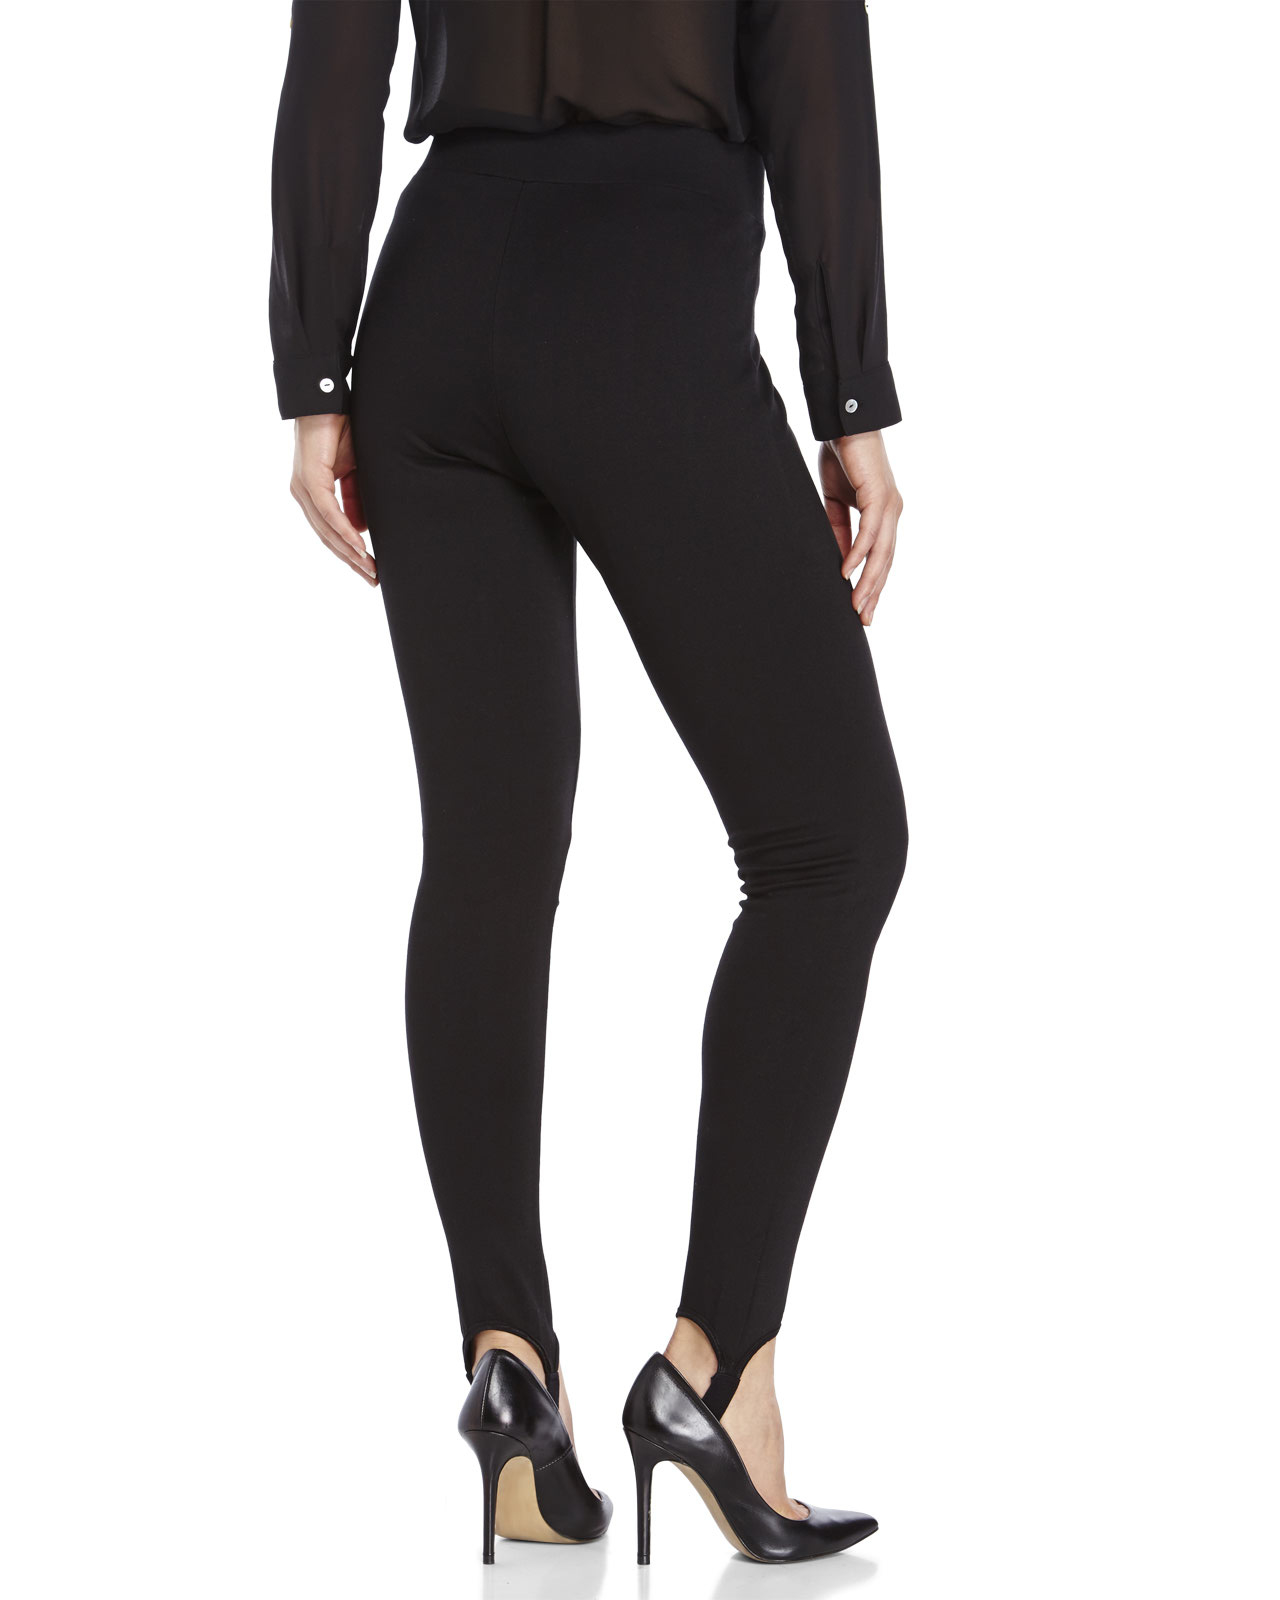 Our leggings have been designed specifically for riding but are also perfect for non-equestrian activities, Featured Best Selling Alphabetically, A-Z Alphabetically, Z-A Price, low to high Price, high to low Date, new to old Date, old to new.